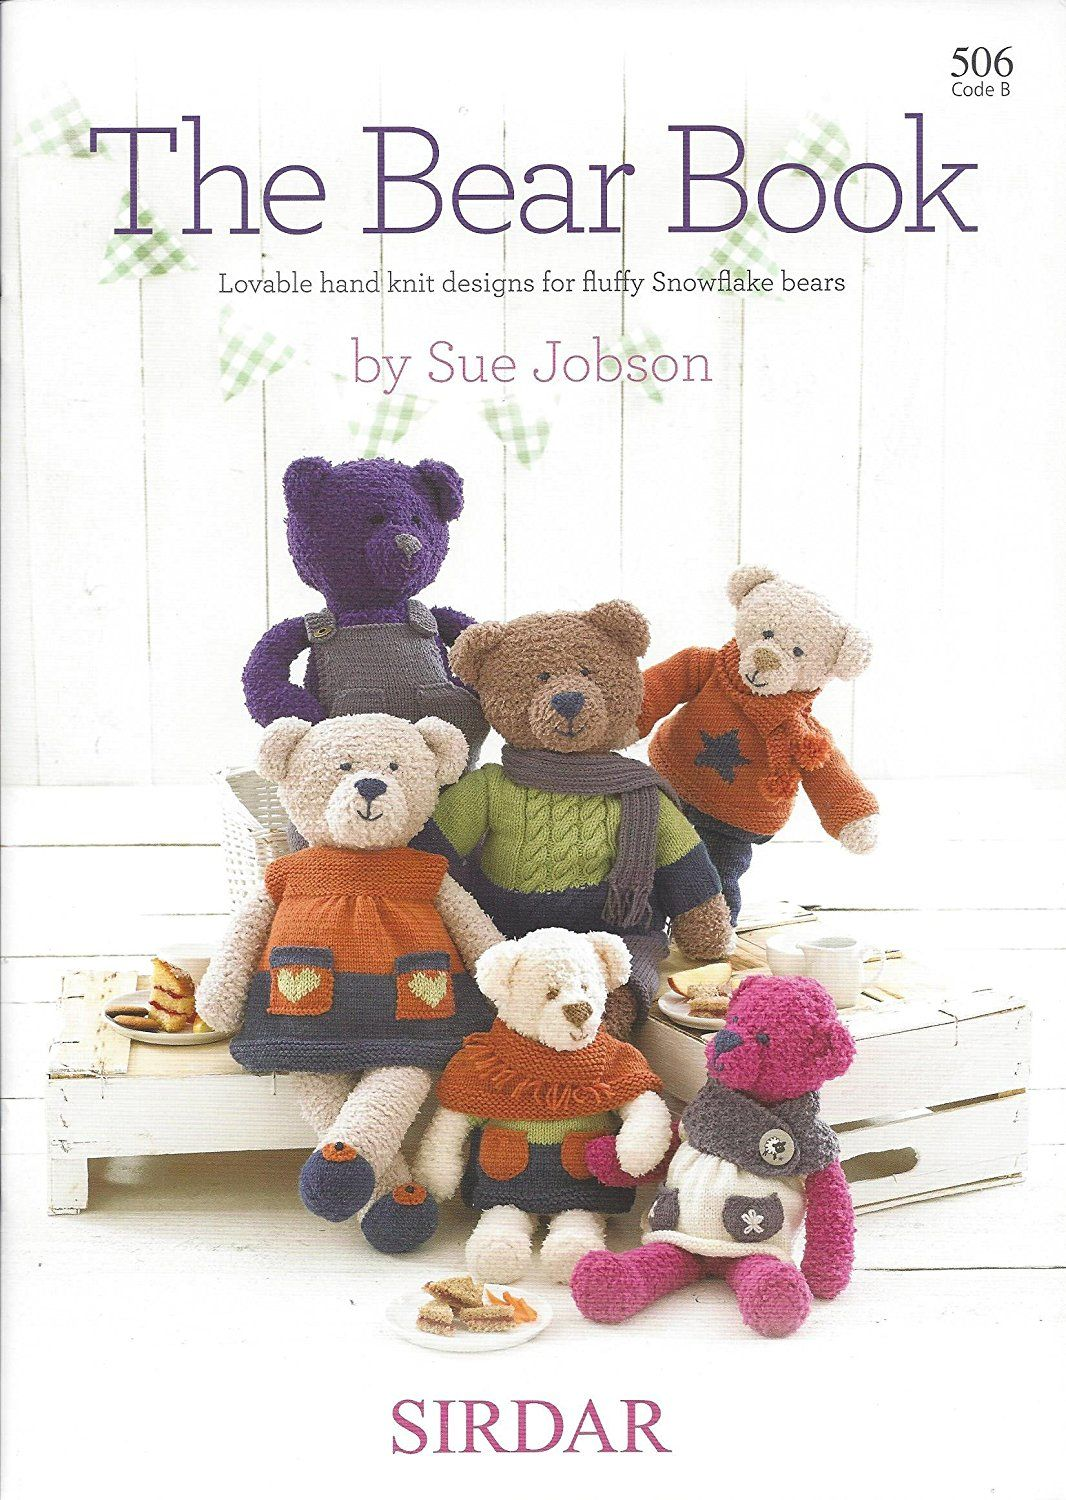 Sirdar Snowflake Toy Knitting Pattern Book - 506 The Bear Book ...